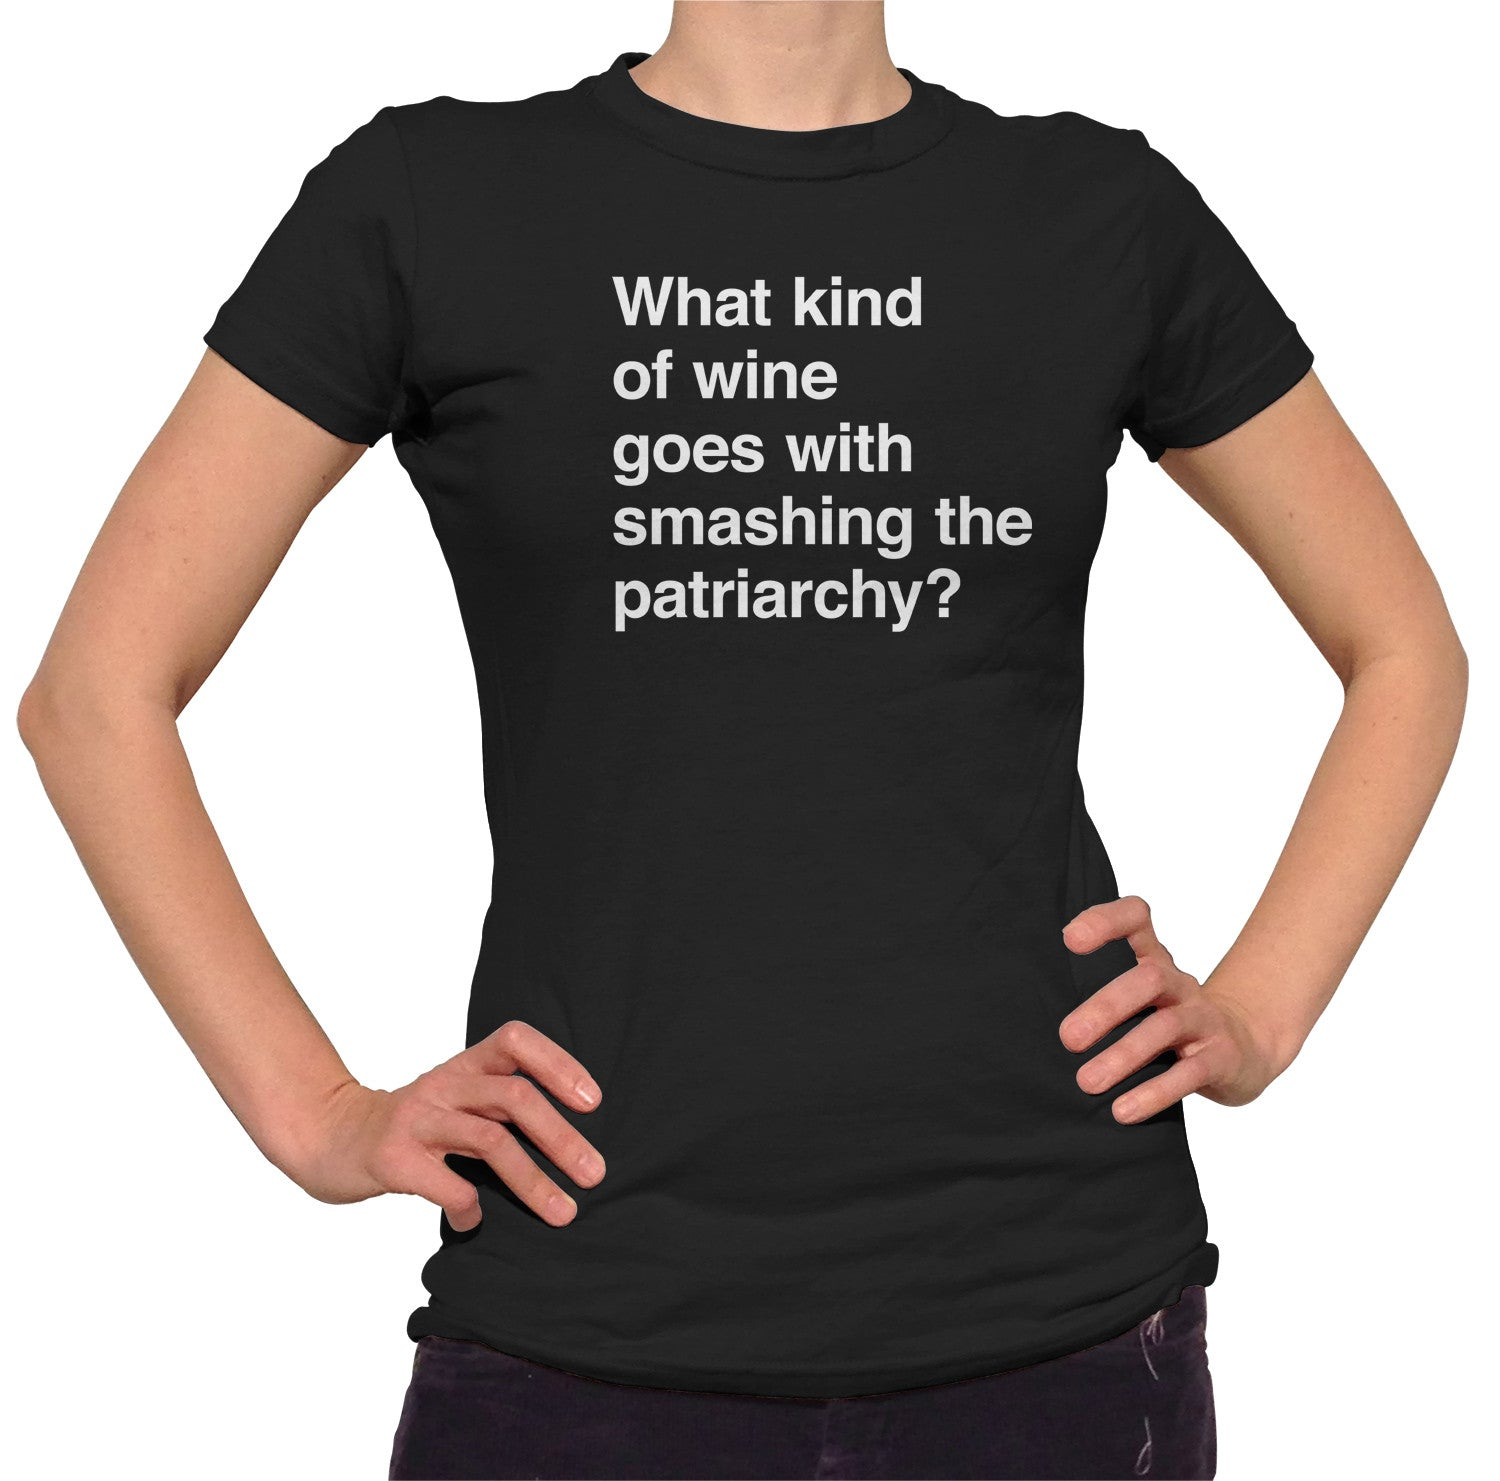 Women's What Kind of Wine Goes with Smashing the Patriarchy? T-Shirt - Funny Feminist Shirt